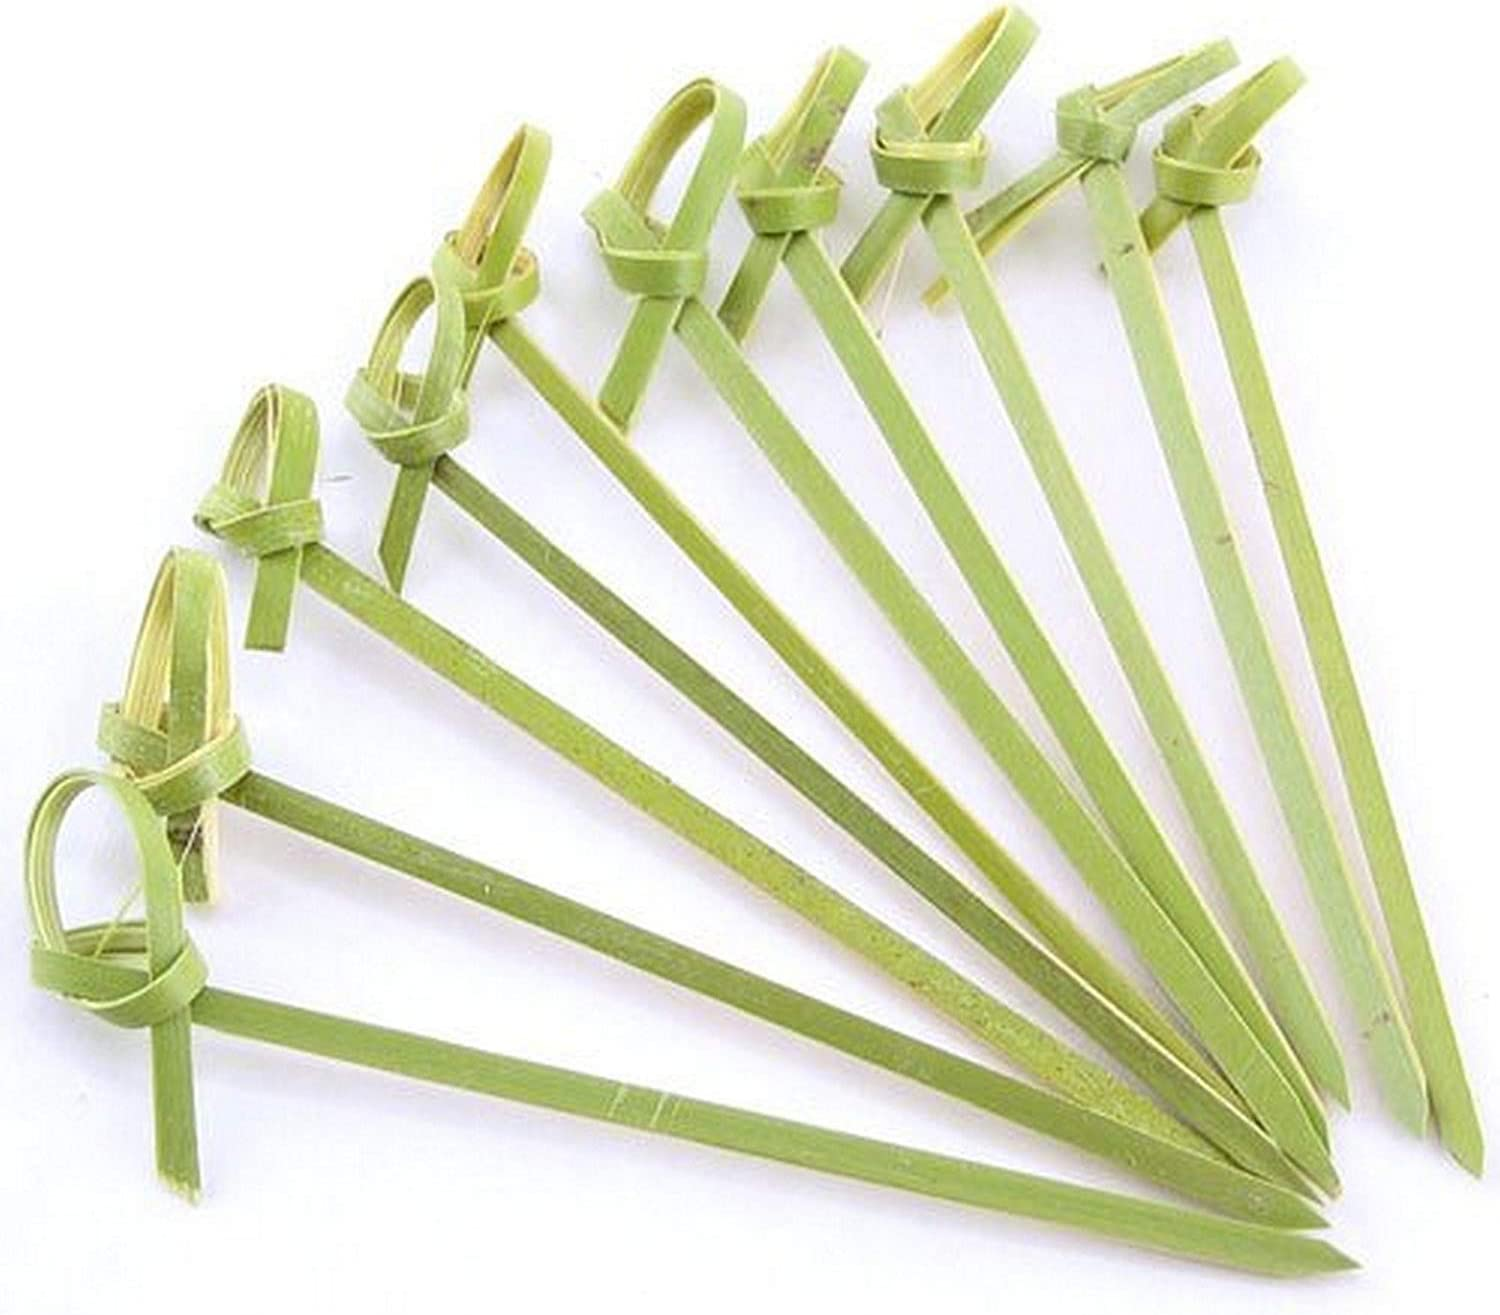 300pcs Knotting Fruit Food Picks Bamboo Cocktail Drink Picks Sticks Party Suppli